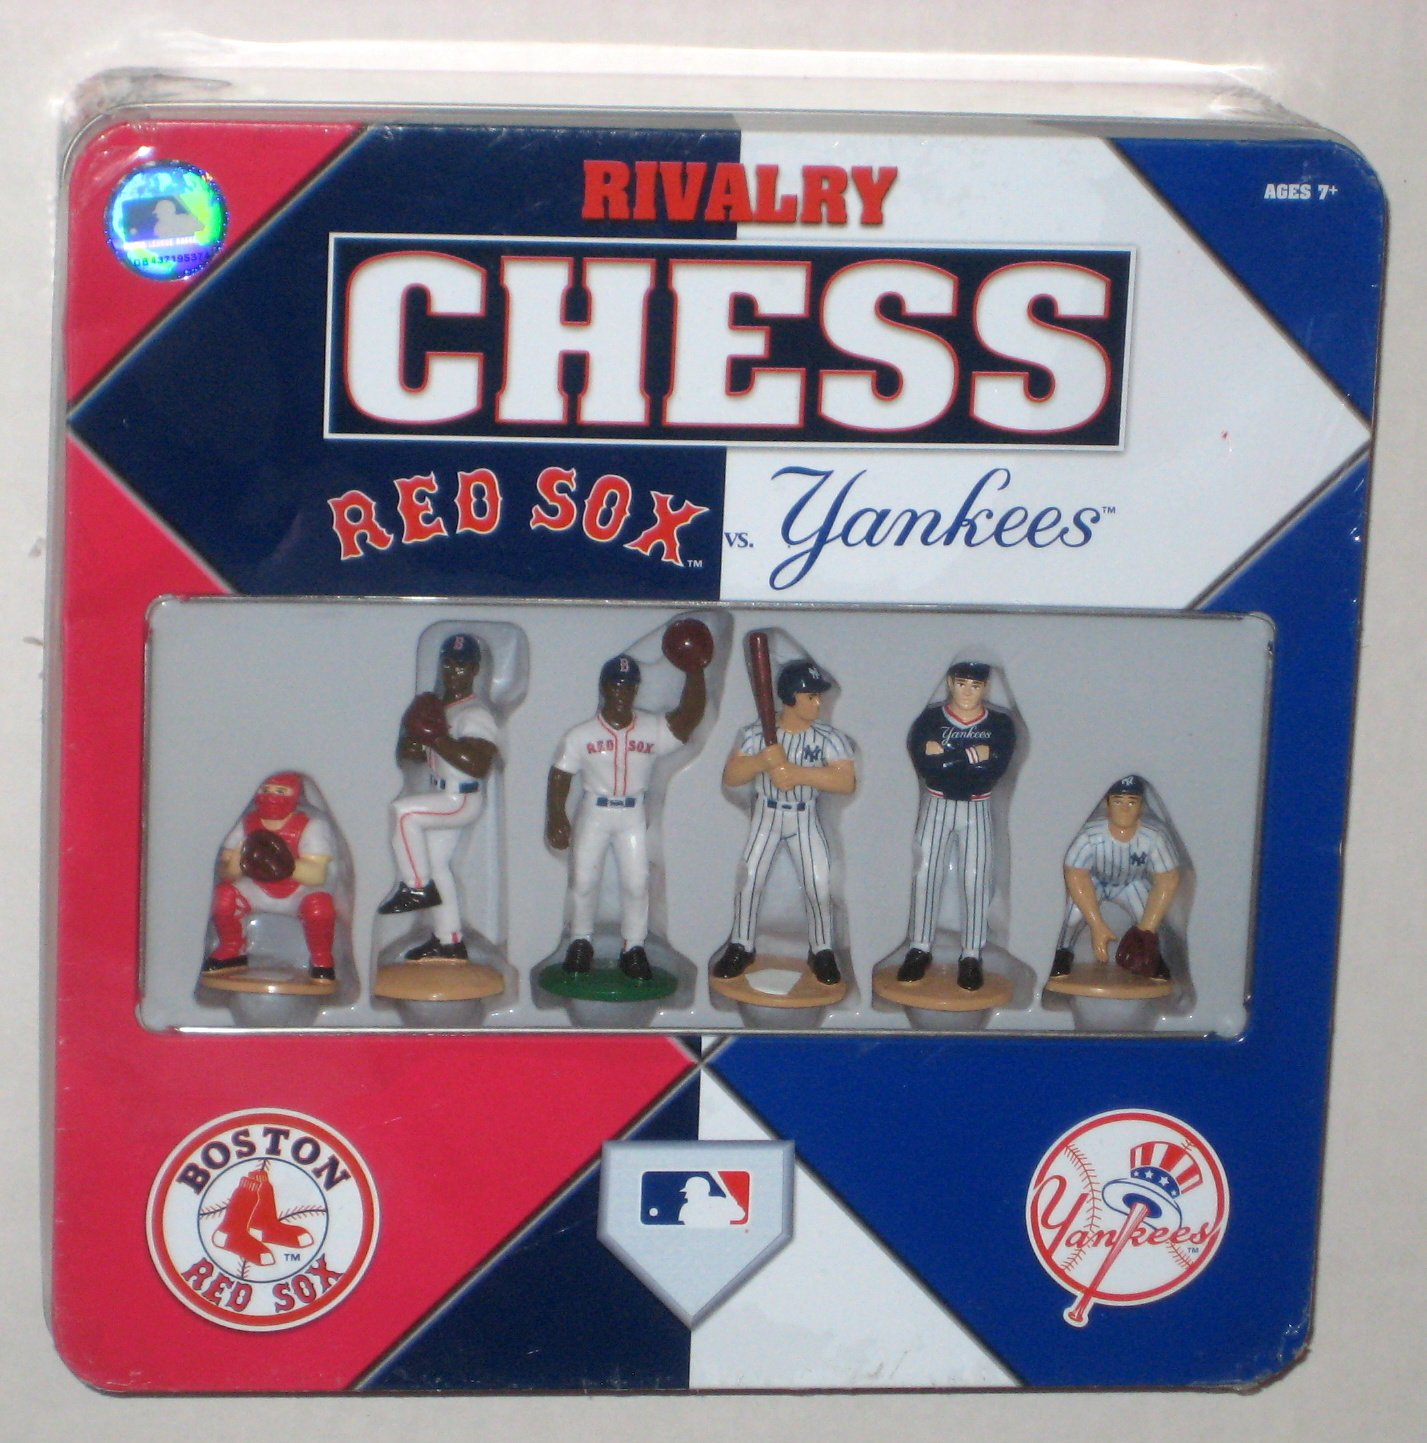 SOLD Rivalry Chess Set Boston Red Sox Vs New York Yankees